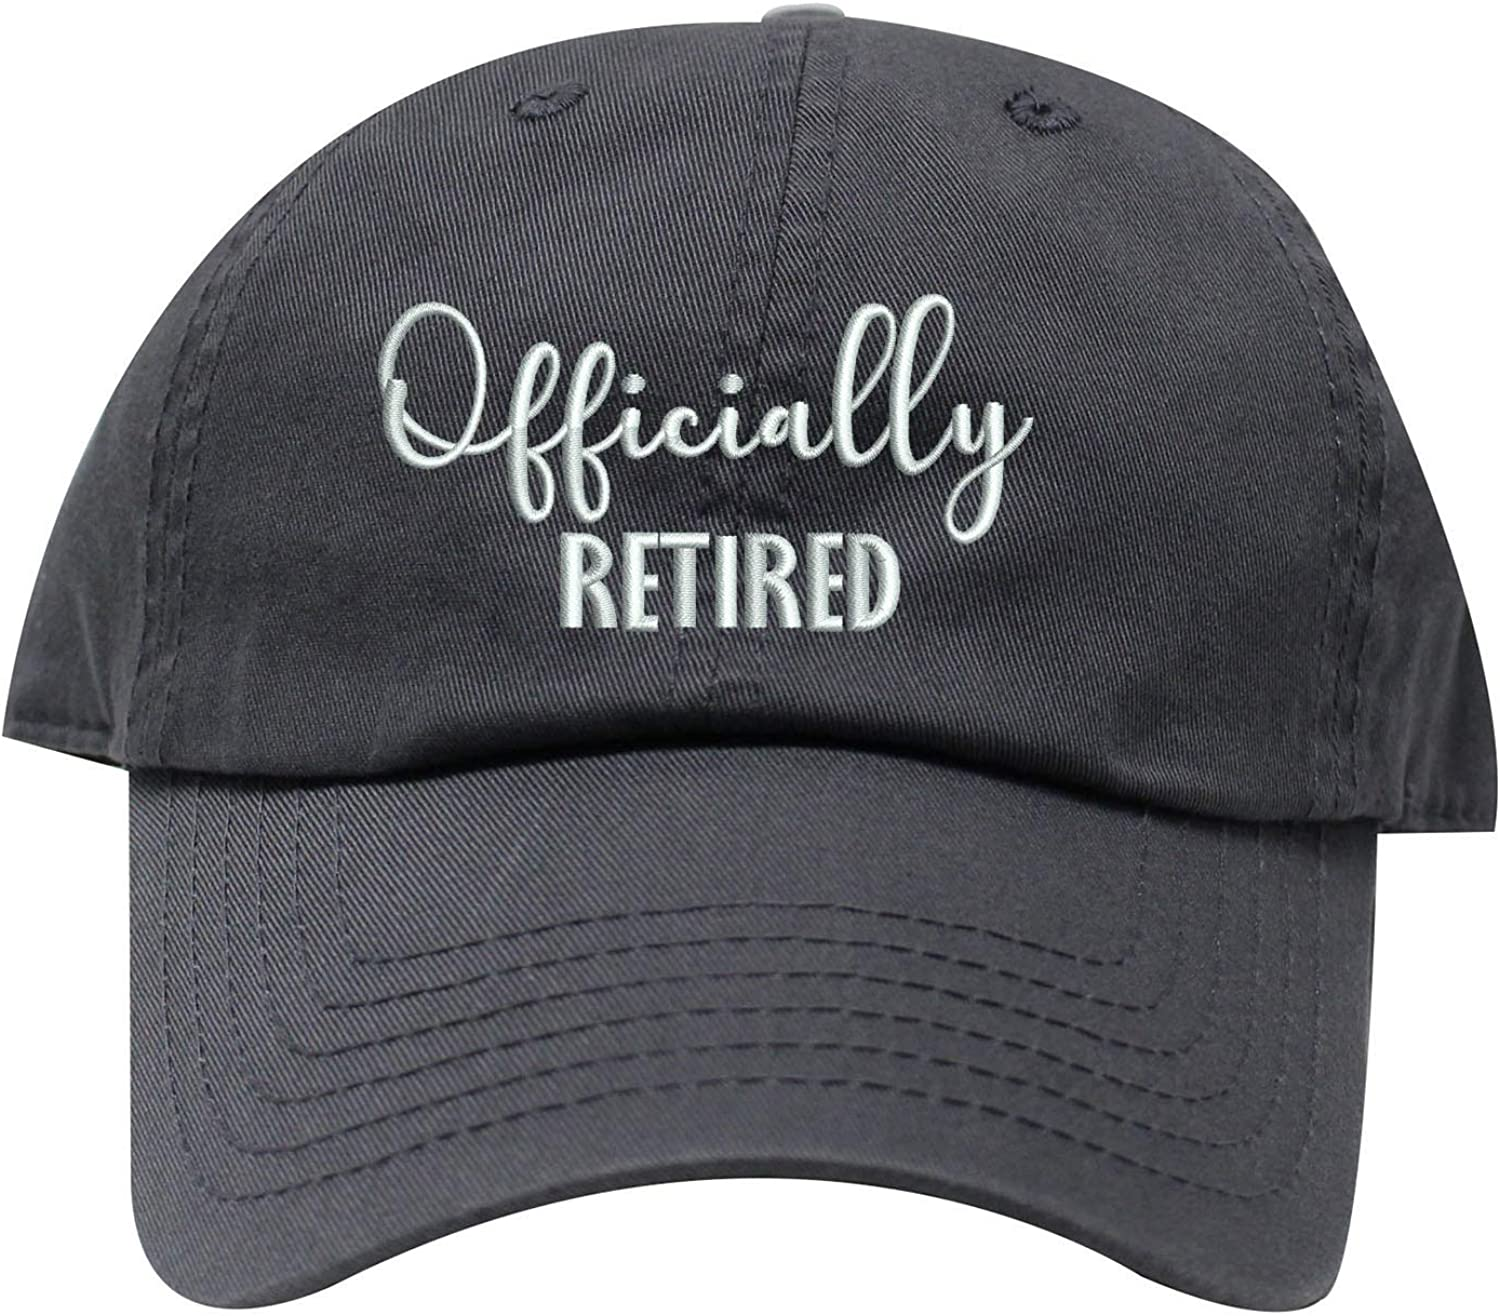 INK STITCH Officially Retired Cotton Baseball Caps - 21 Colors